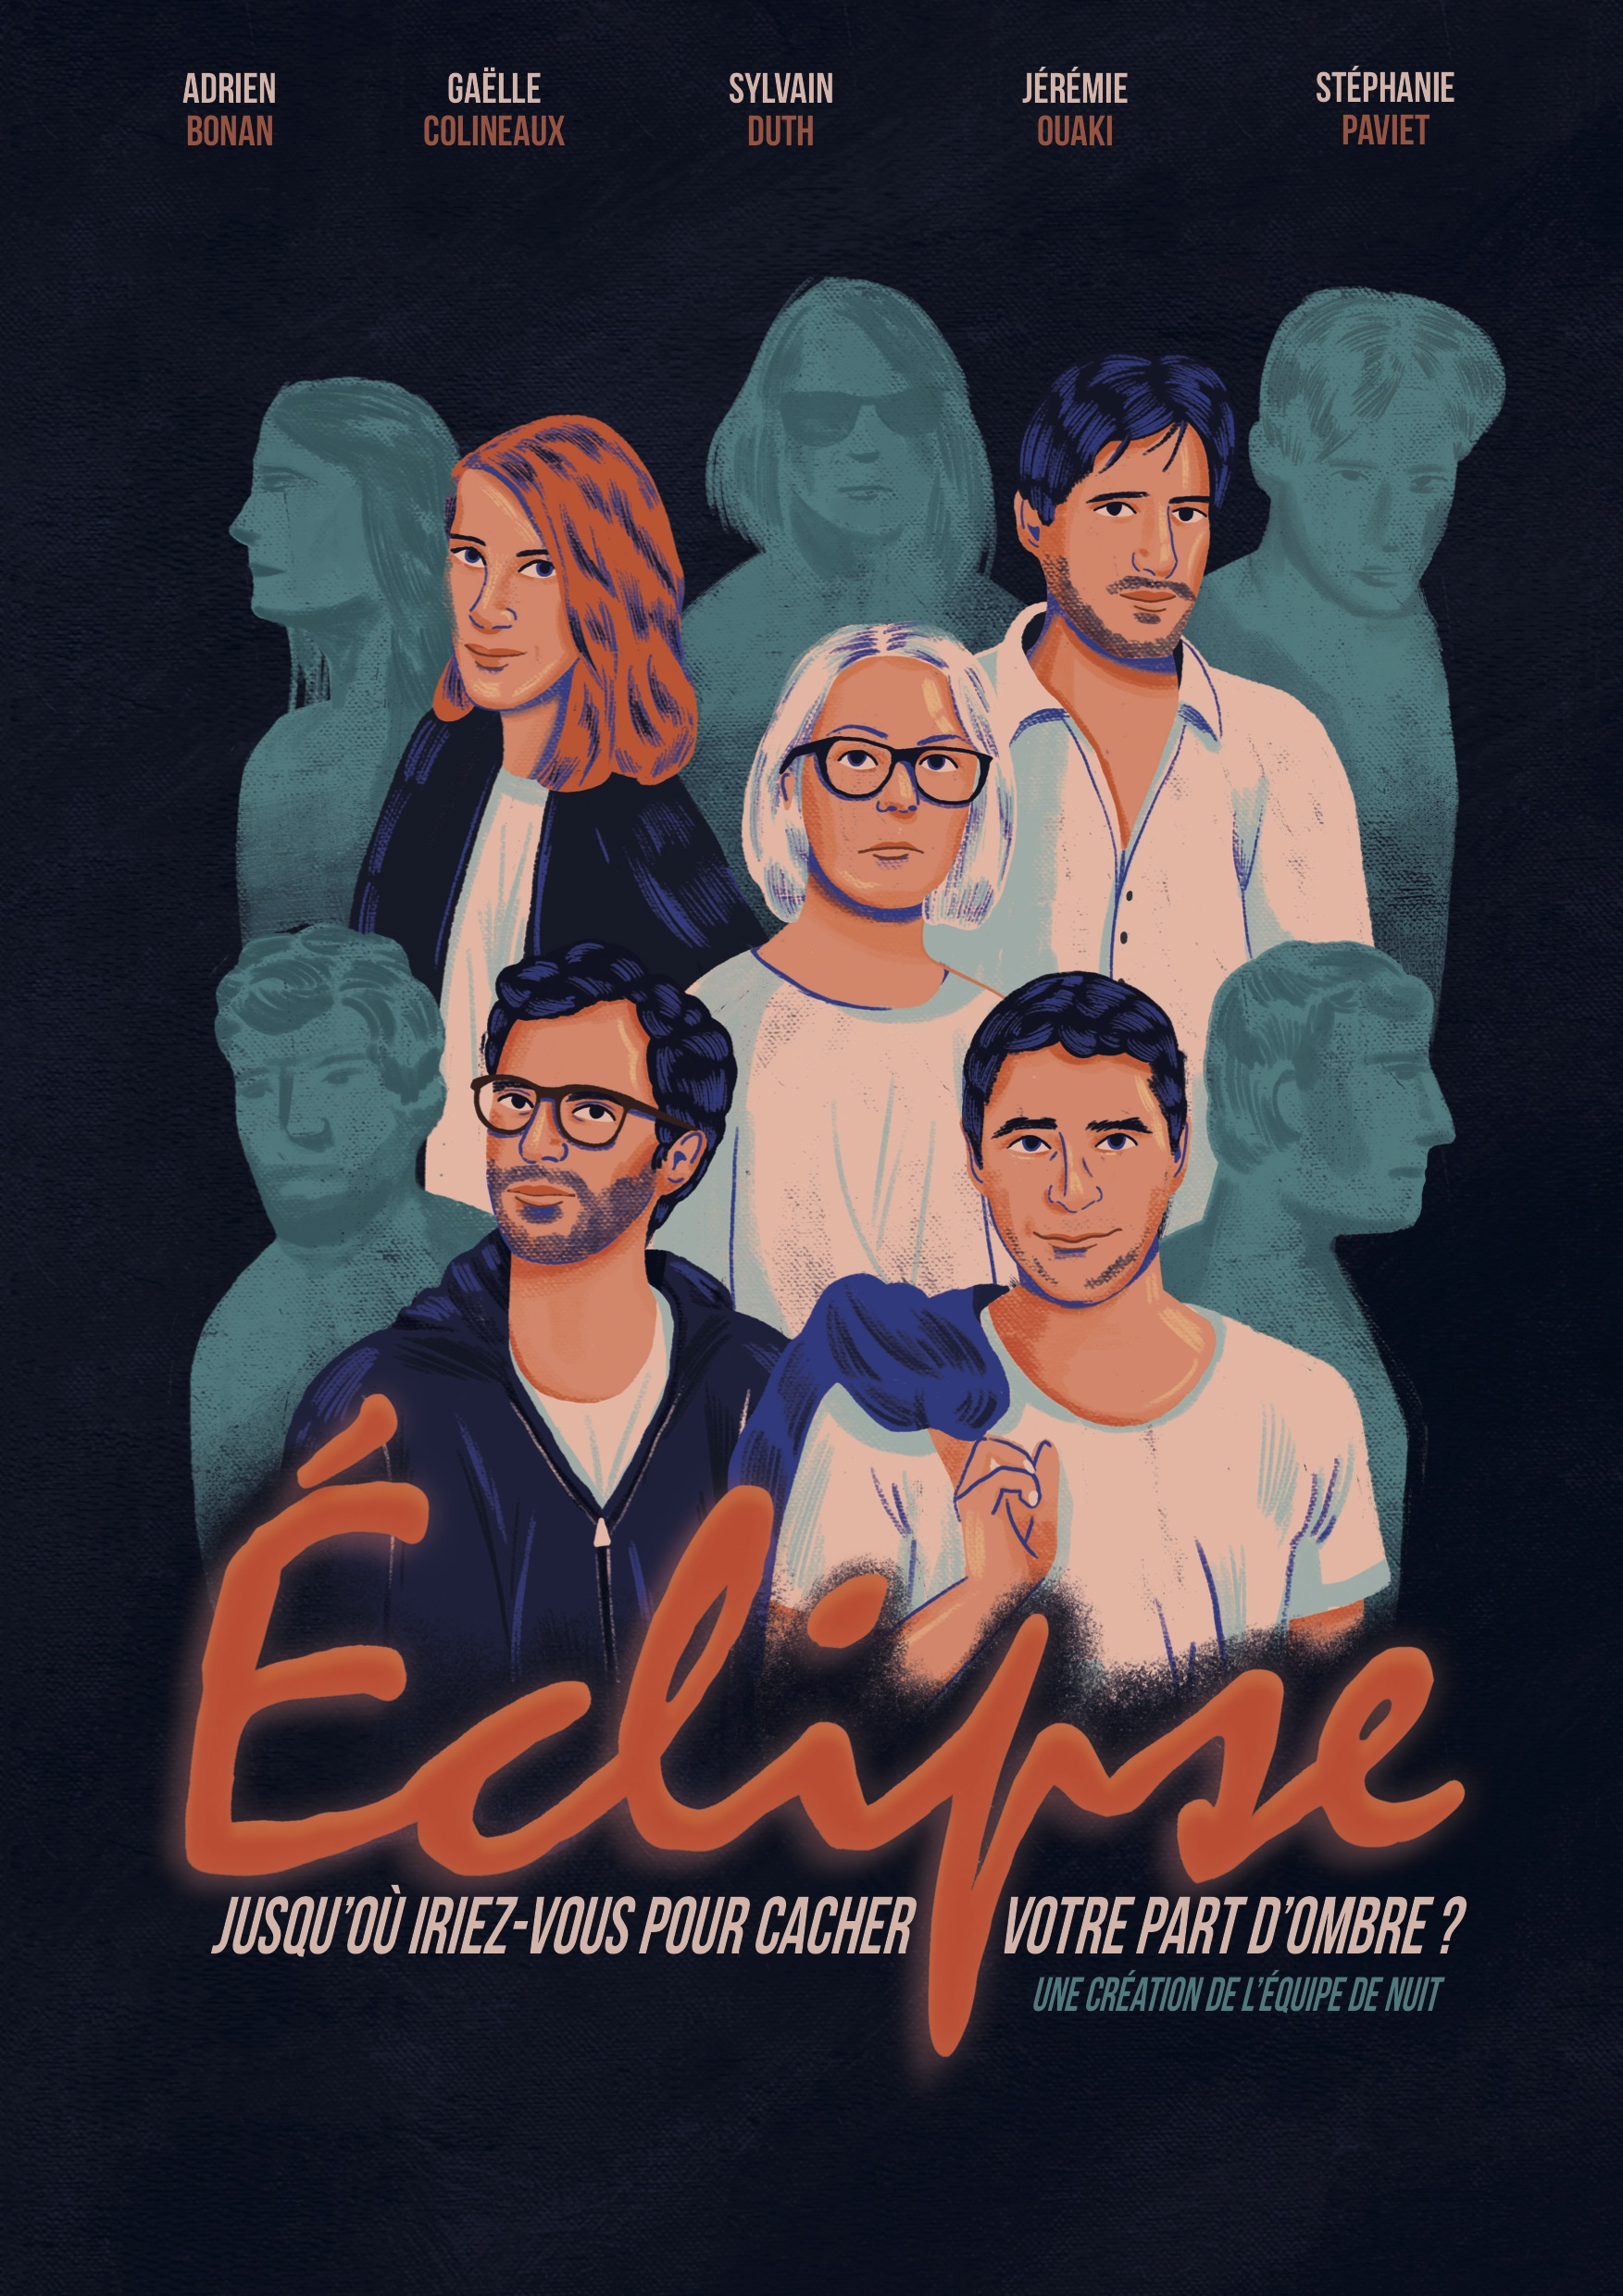 AFFICHE_SPECTACLE_ECLIPSE